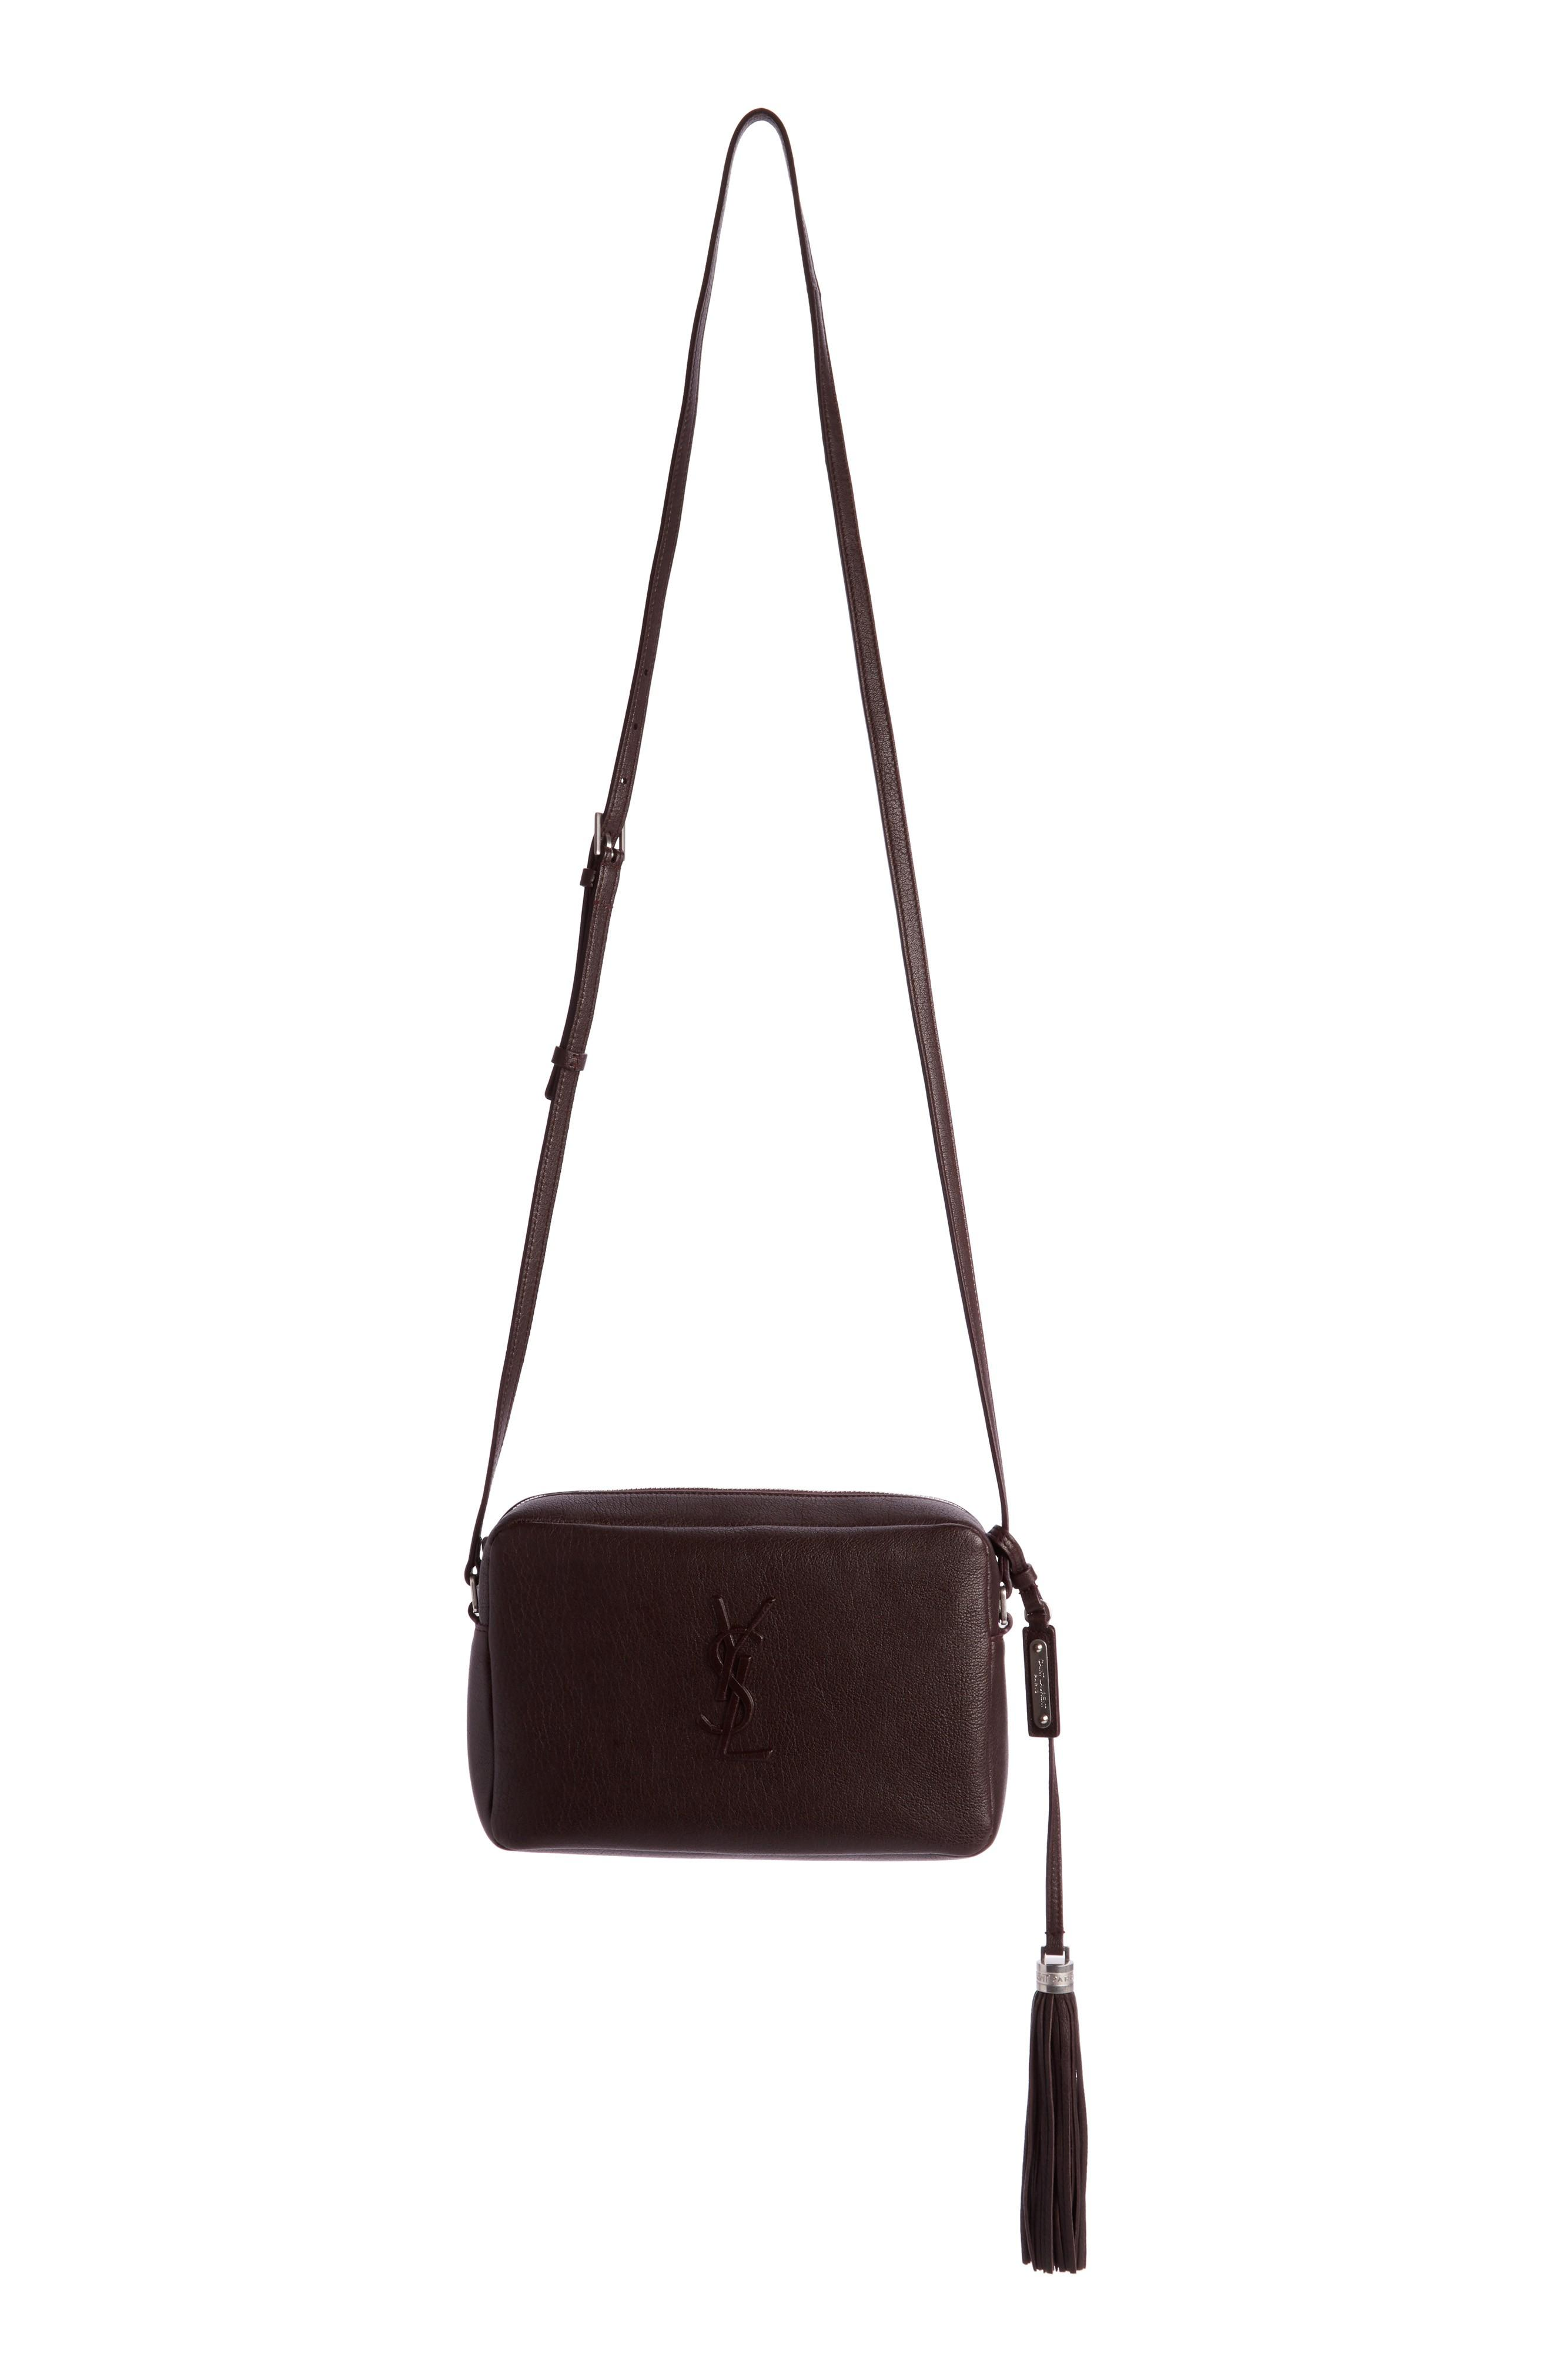 242d409c2646 Style Name  Saint Laurent Small Mono Leather Camera Bag. Style Number   5631613 1. Available in stores.